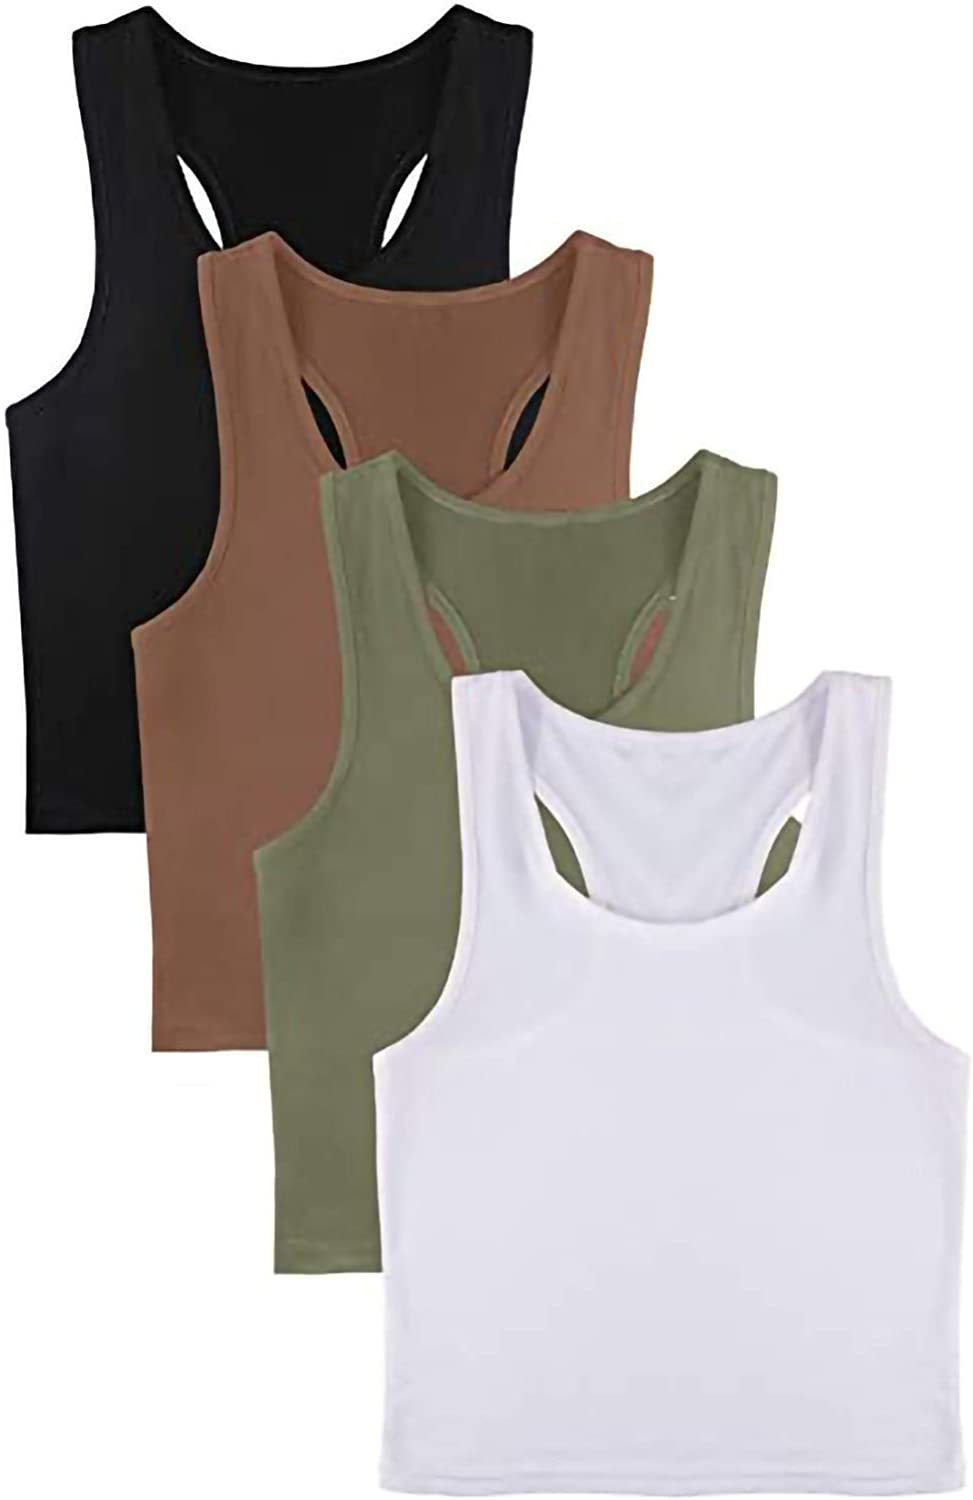 4 Pack Womens Longline Sports Bra Padded Crop Tank Tops Workout Yoga Bra with Removable Pads